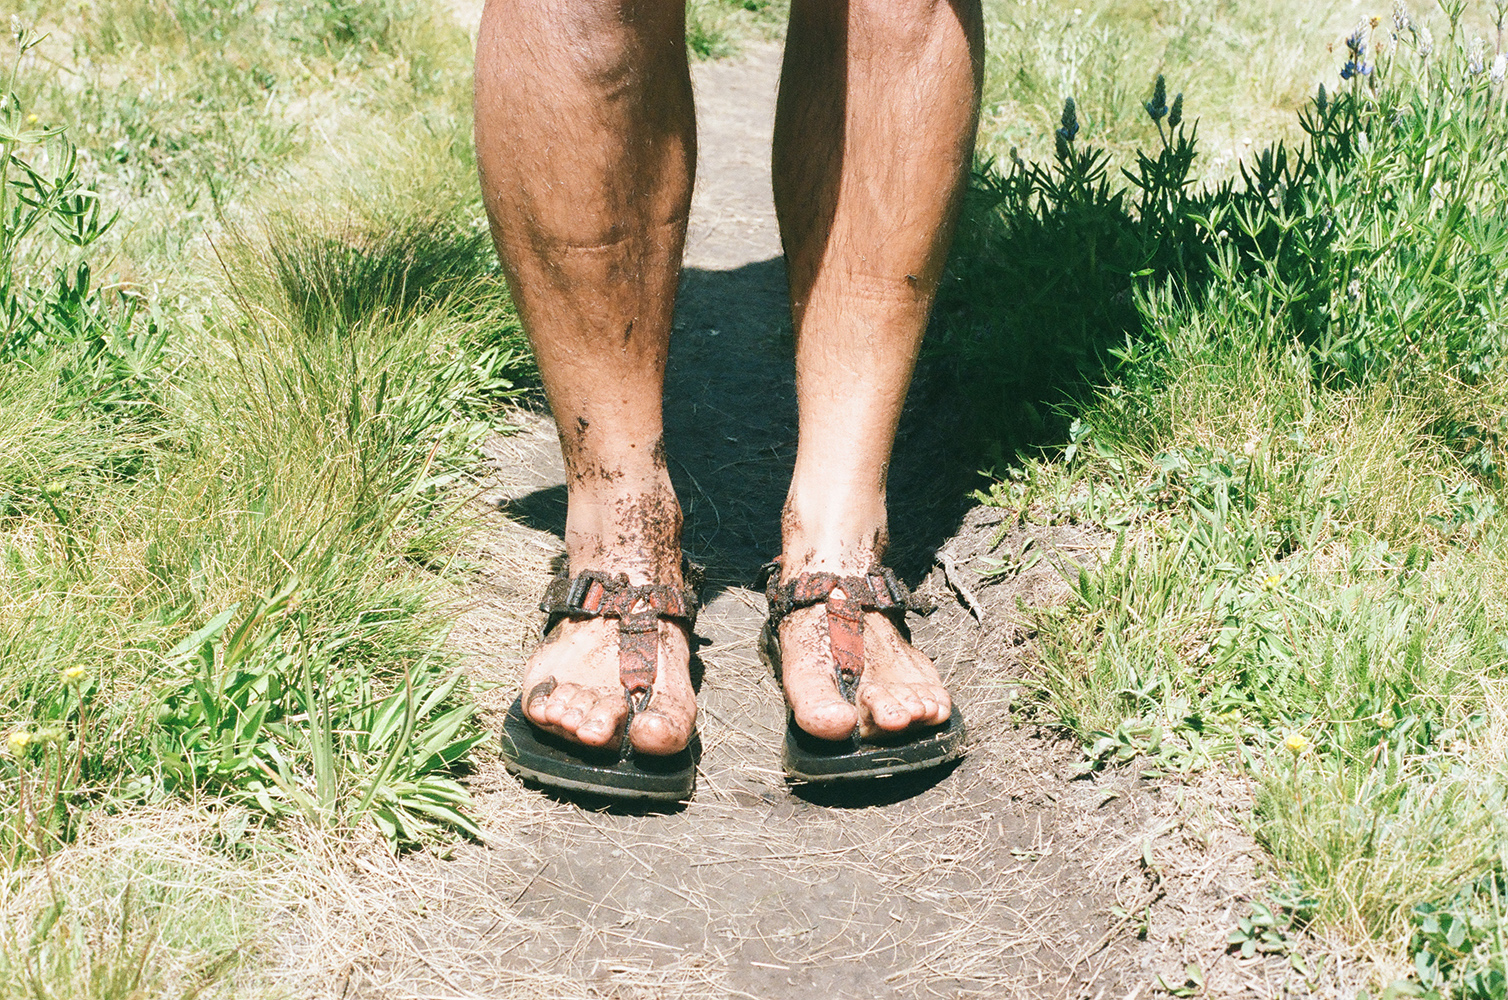 Owen's feet after hiking through the meadow, 35mm film